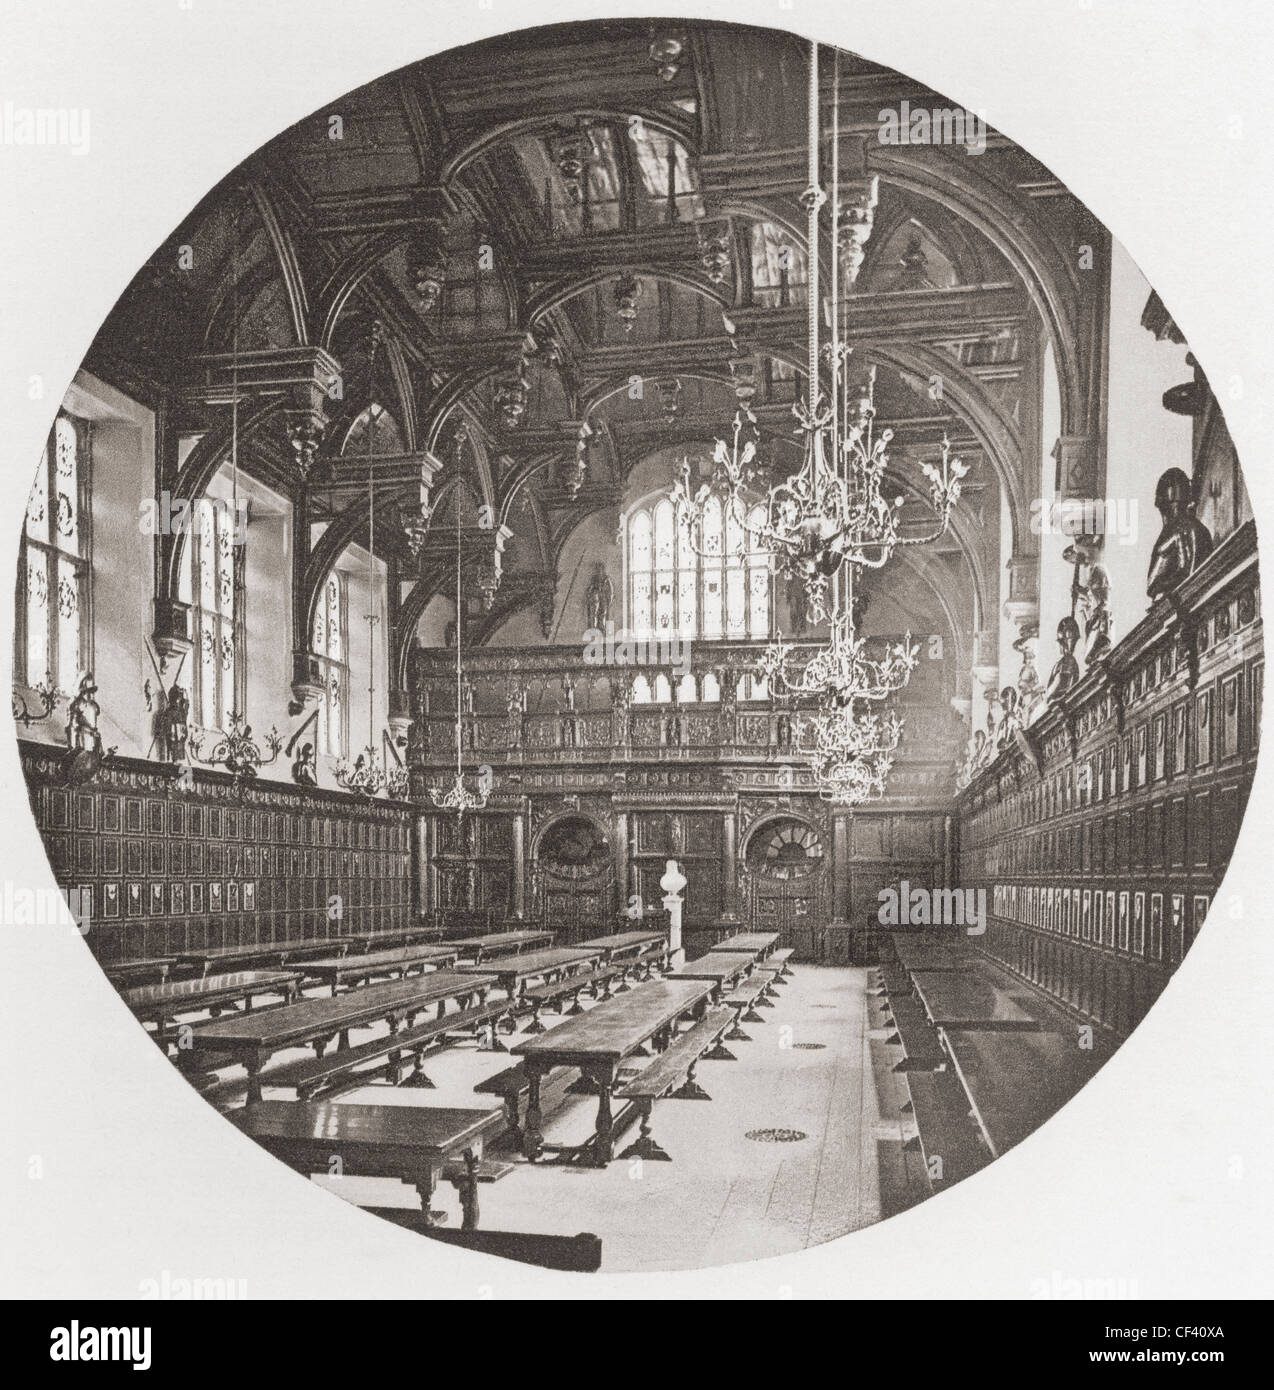 Middle Temple Hall, one of the four Inns of Court, London, England in the late 19th century. - Stock Image